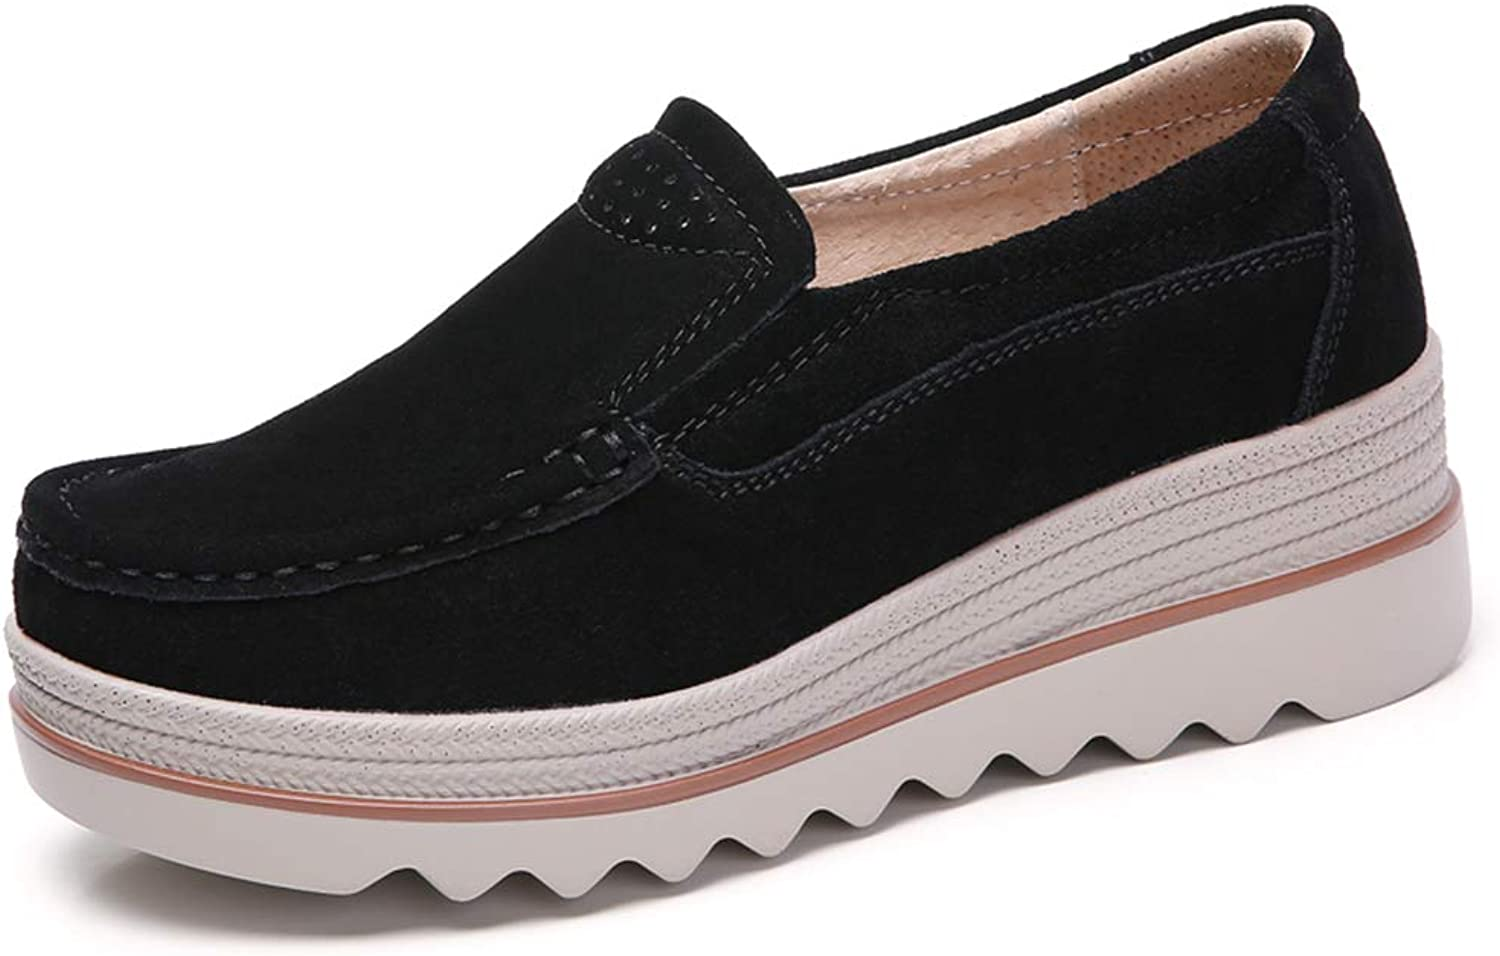 JOYBI Women Fashion Round Toe Loafers Flats Suede Comfortable Slip On Creepers Casual Platform Sneakers